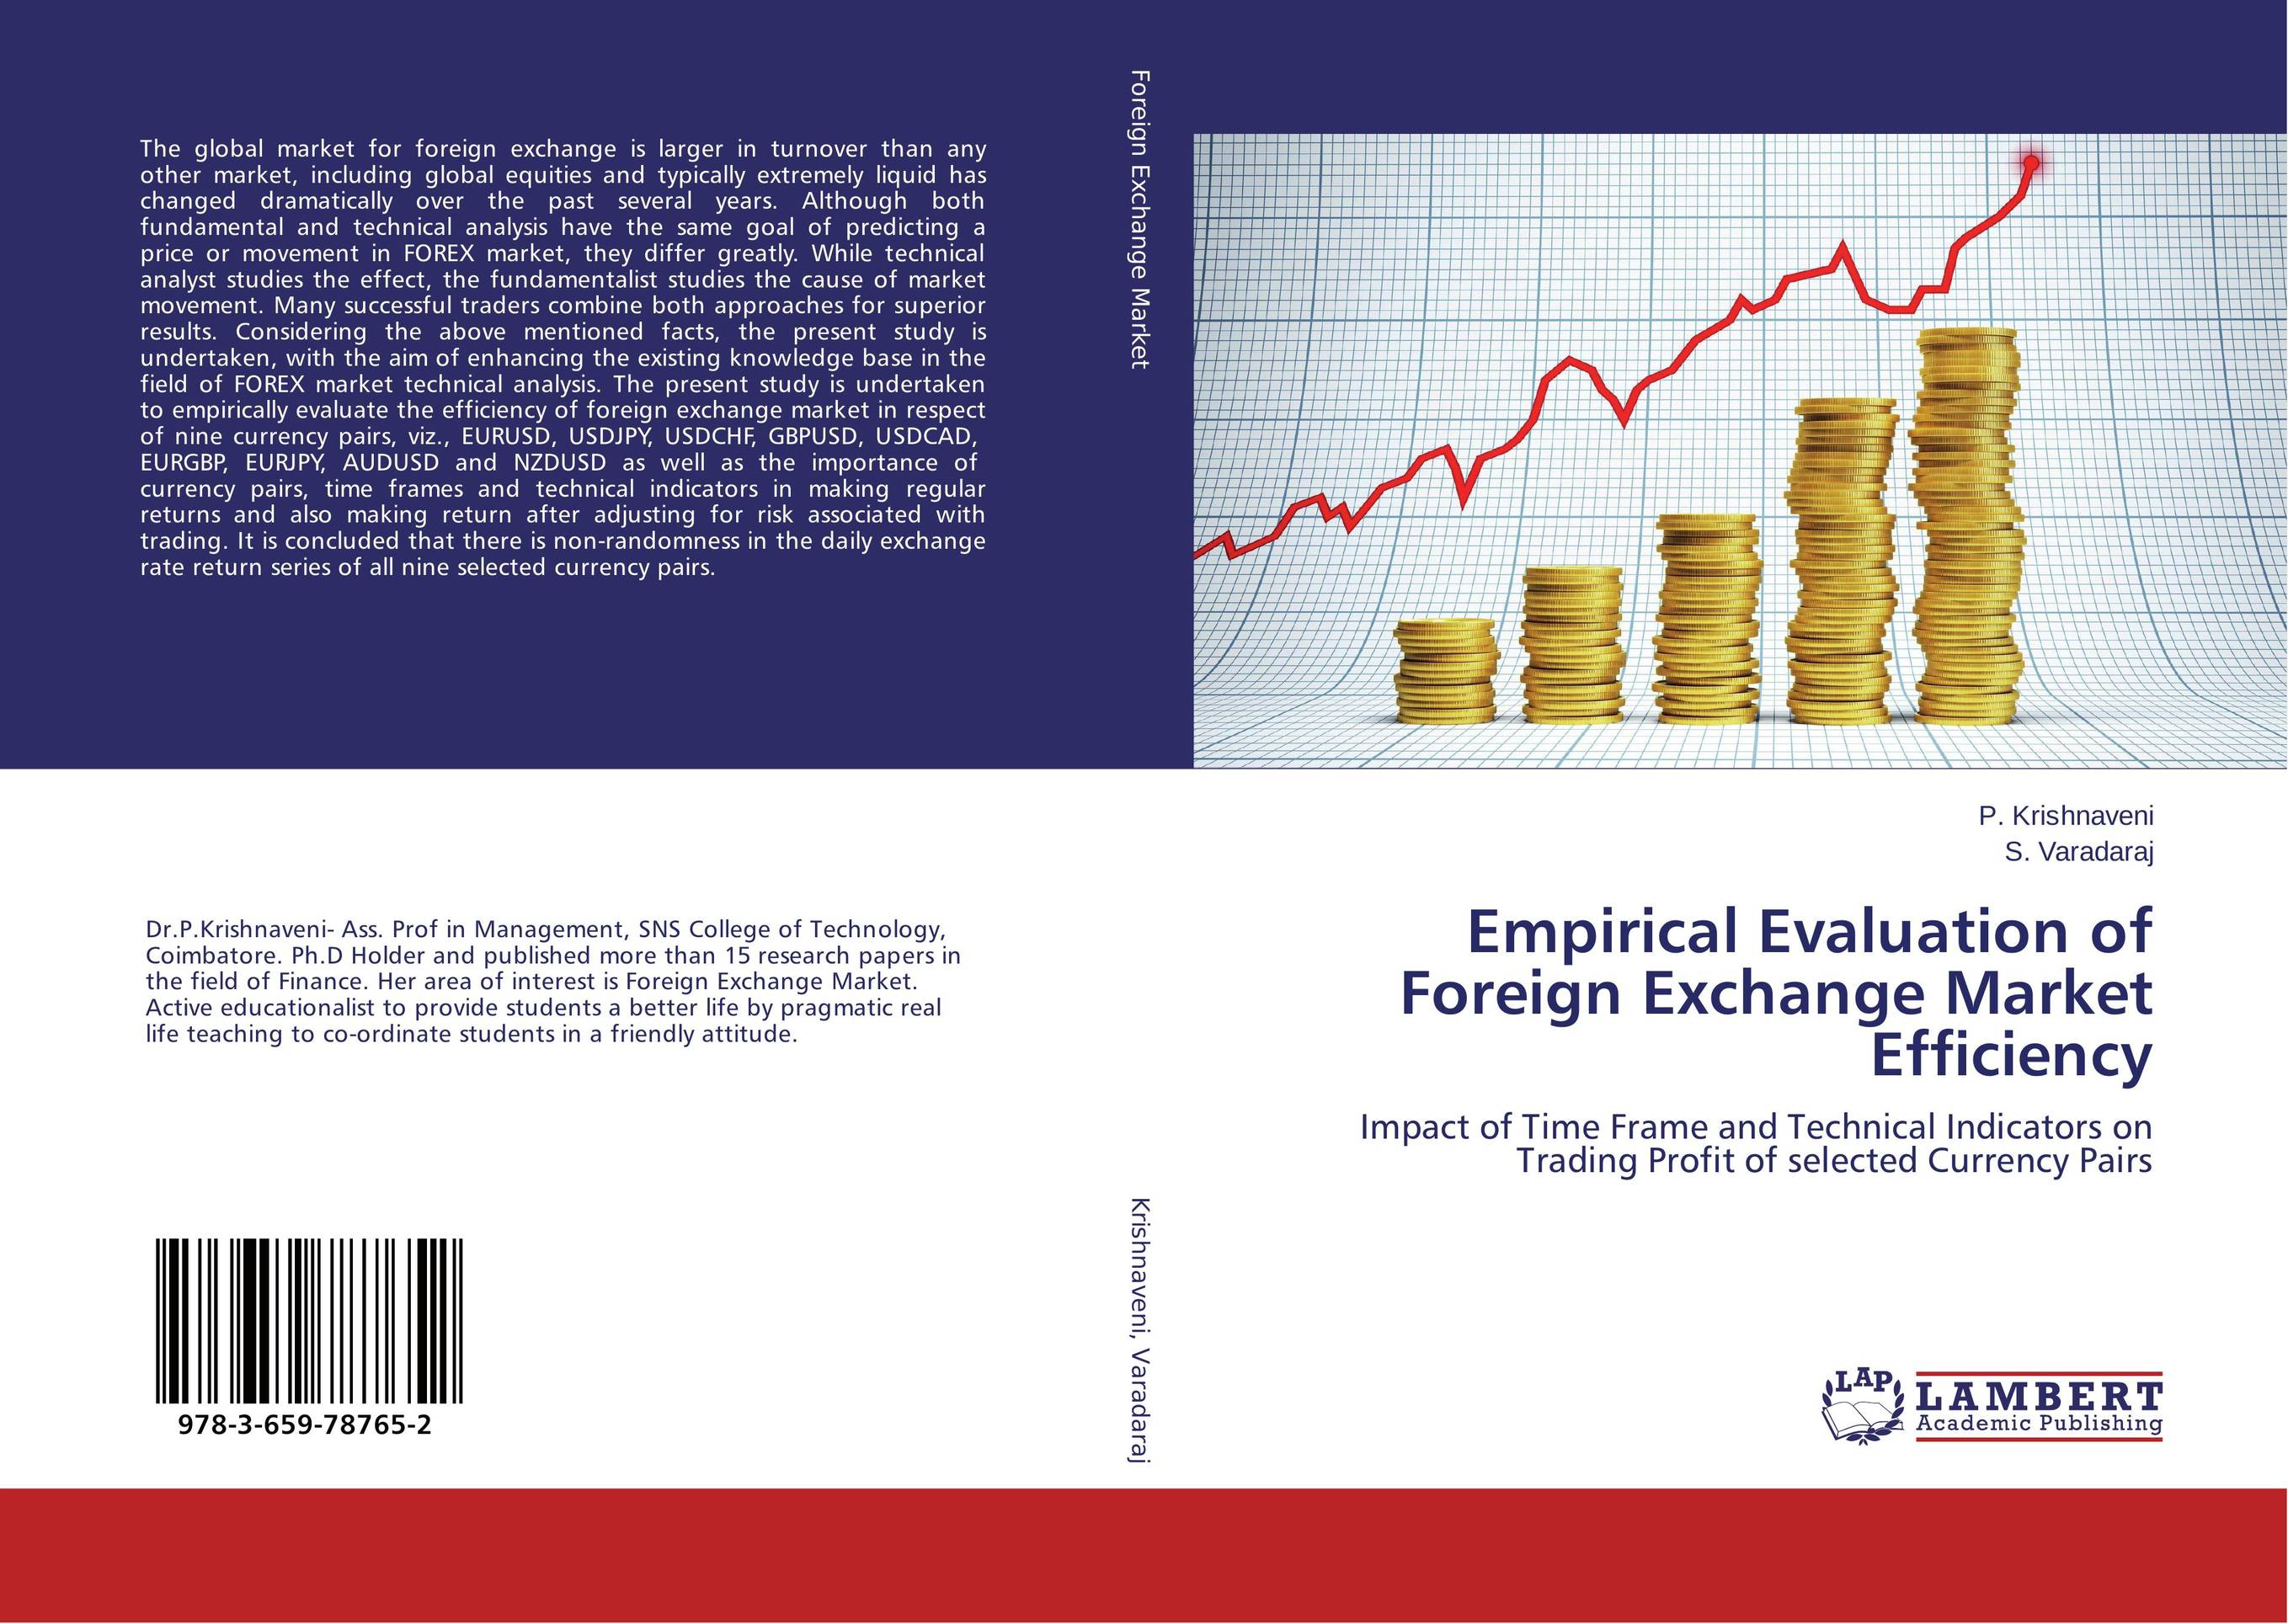 Empirical Evaluation of Foreign Exchange Market Efficiency the role of evaluation as a mechanism for advancing principal practice